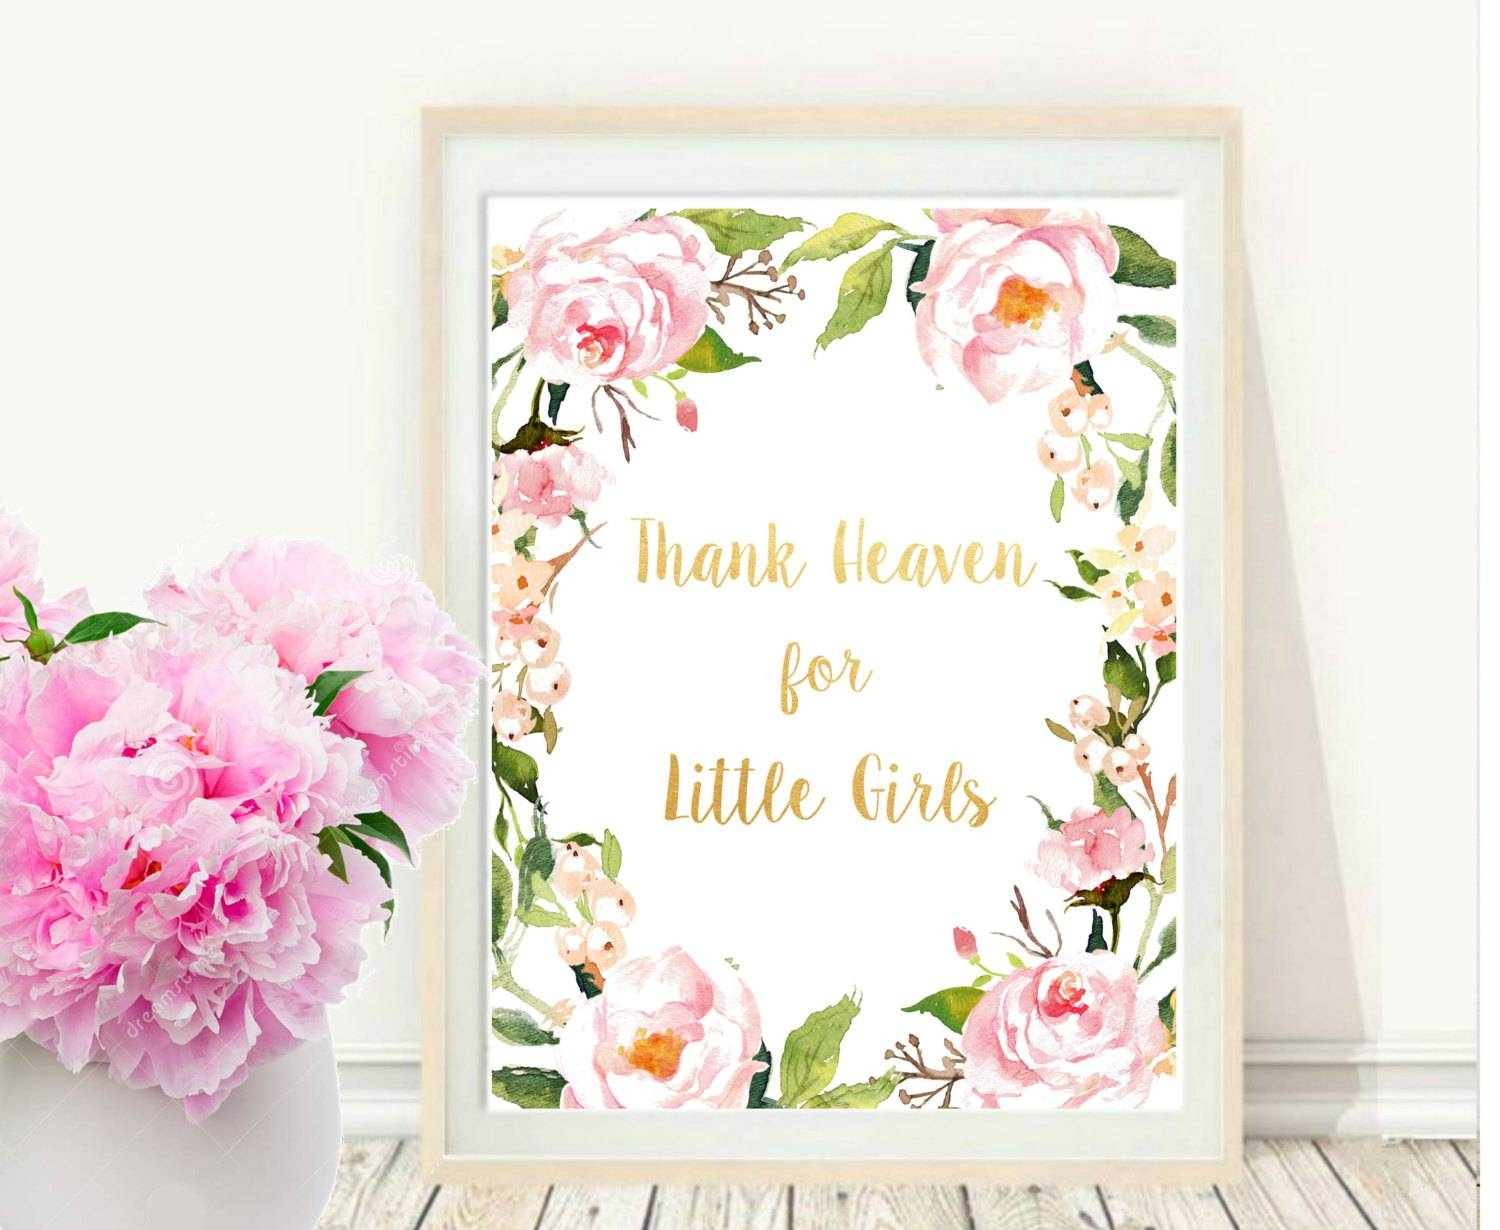 Girl Nursery Wall Art Thank Heaven For Little Girls Intended For Newest Little Girl Wall Art (Gallery 5 of 20)